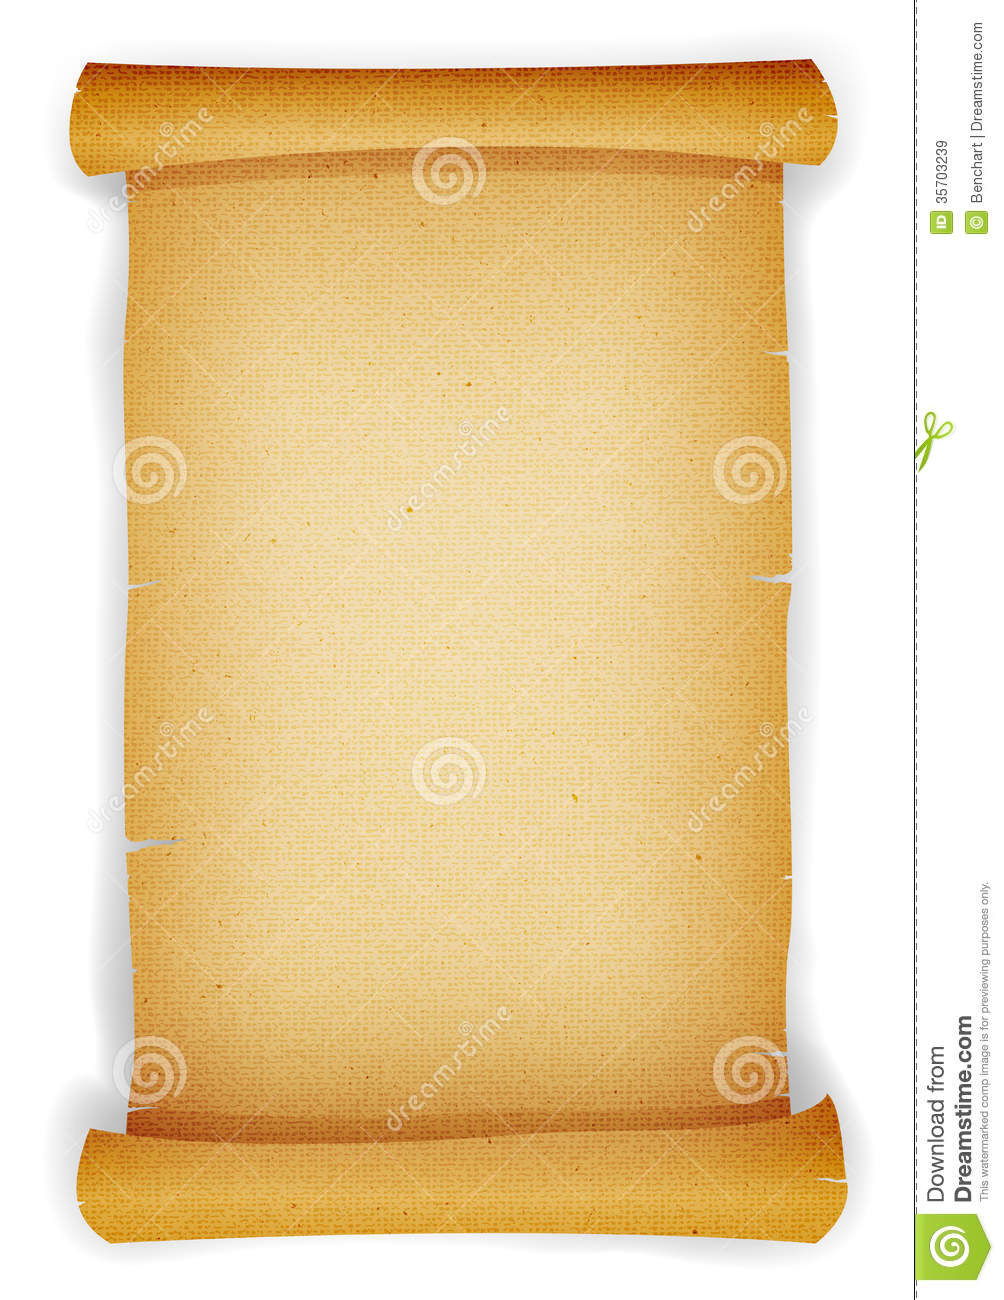 Old textured parchment scroll royalty free stock images for Pirate scroll template